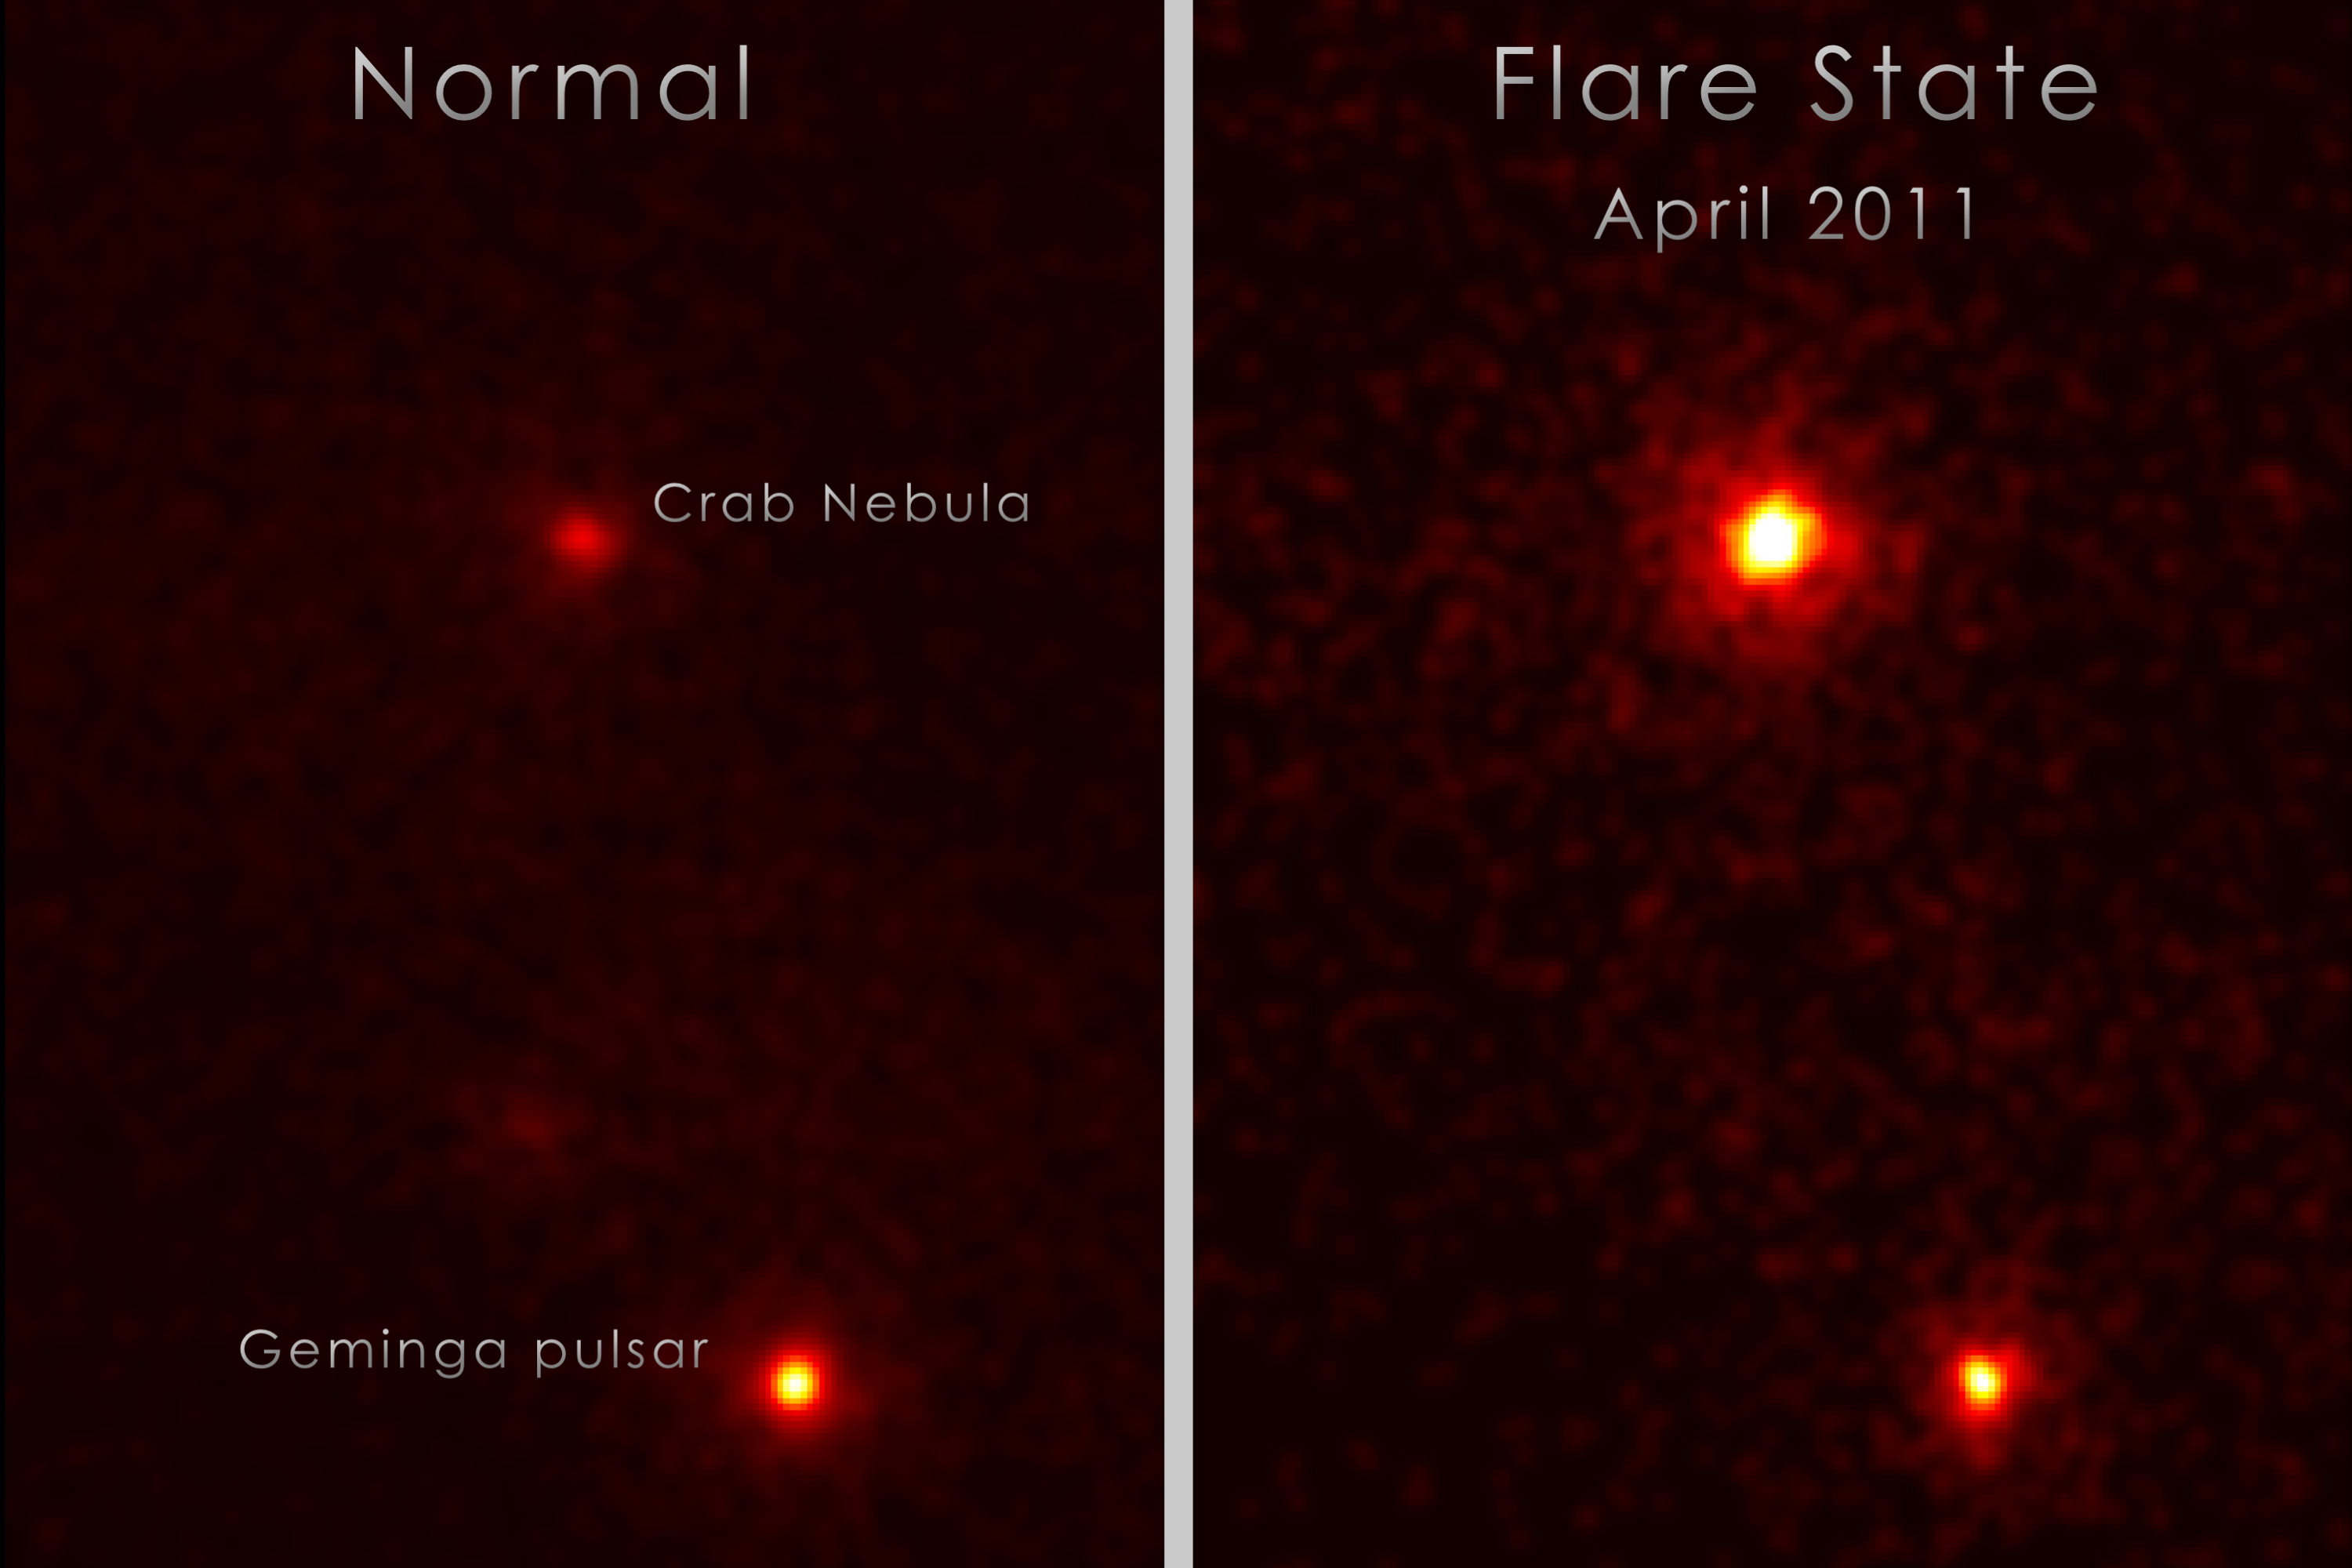 fermi spots u0027superflares u0027 in crab nebula nasa